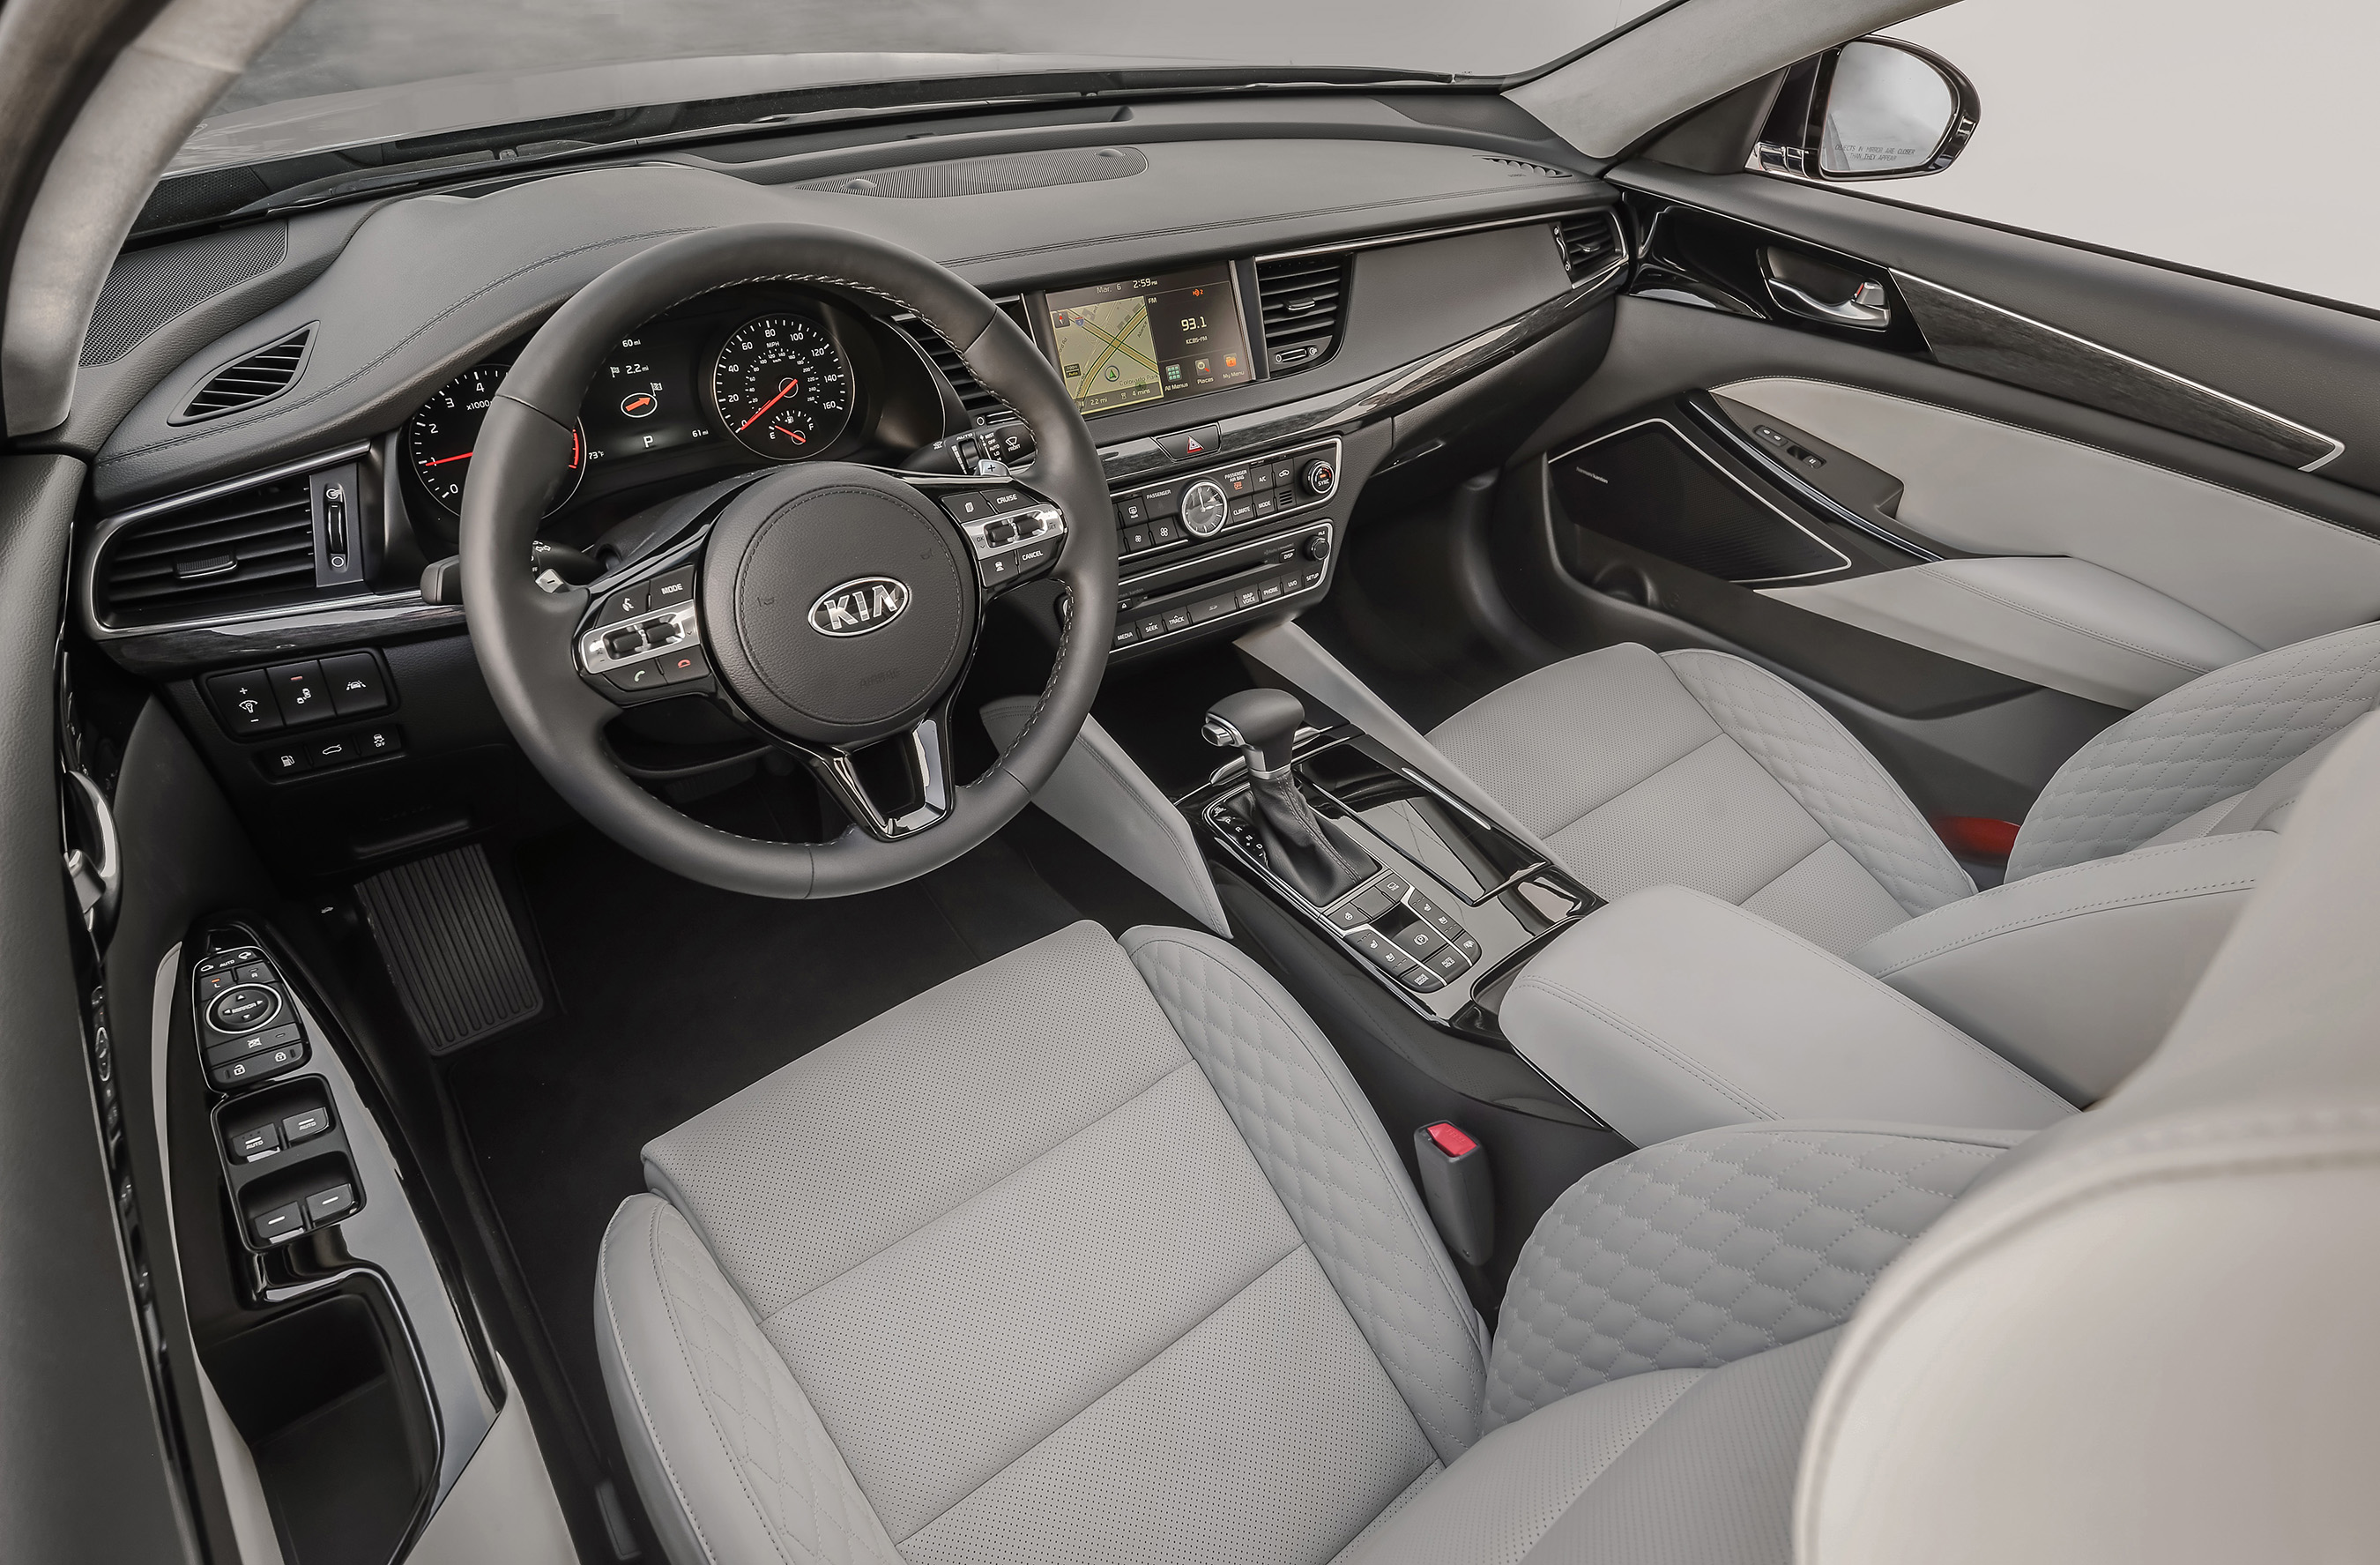 All-new 2017 Kia Cadenza takes its sophistication to greater heights with a beautifully crafted interior.